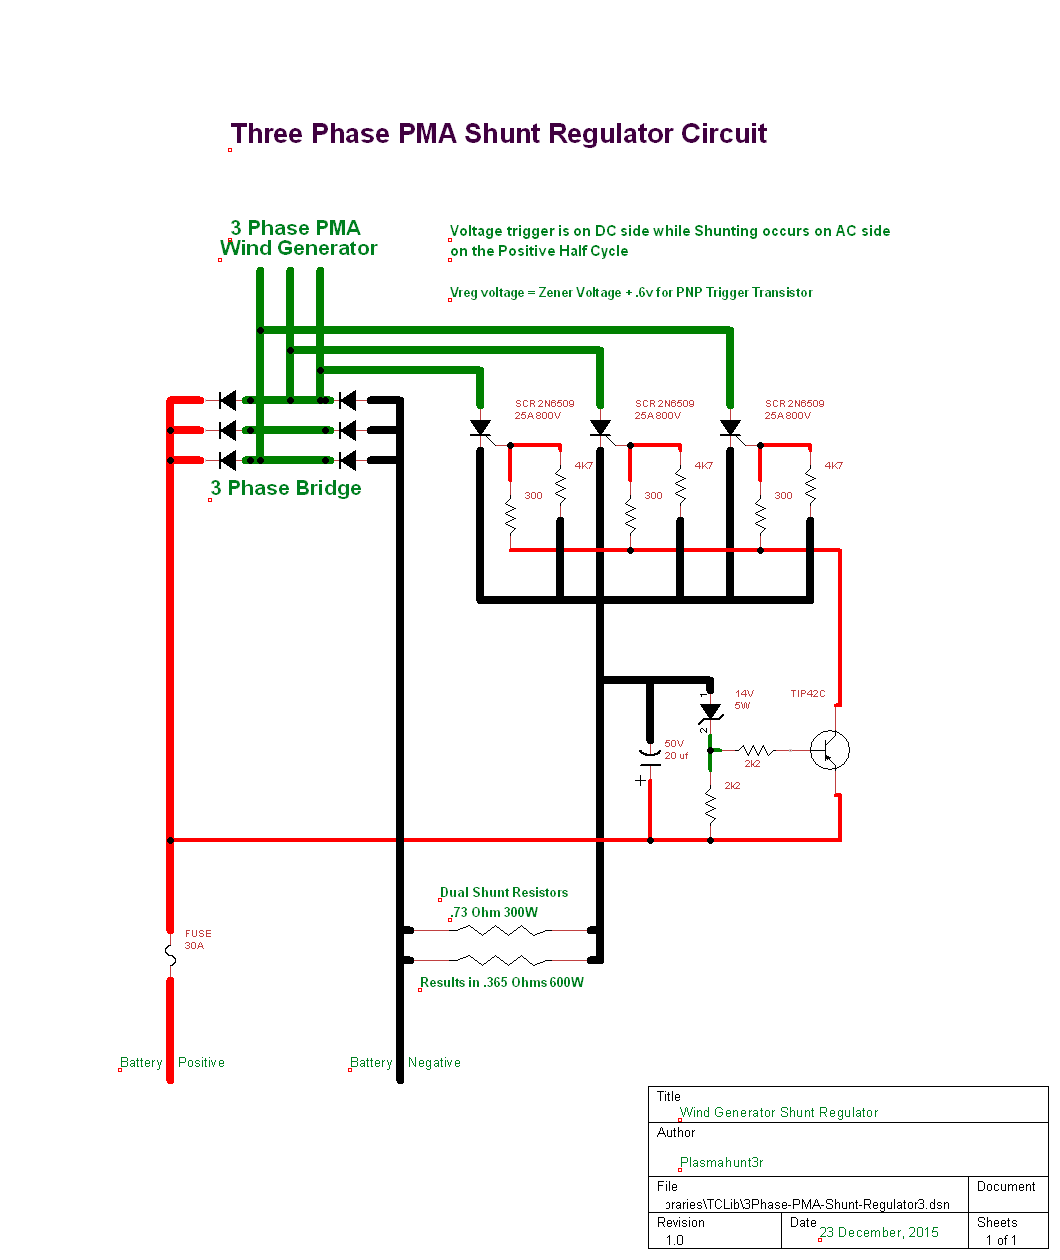 3Phase-PMA-Shunt-Regulator3.png ...